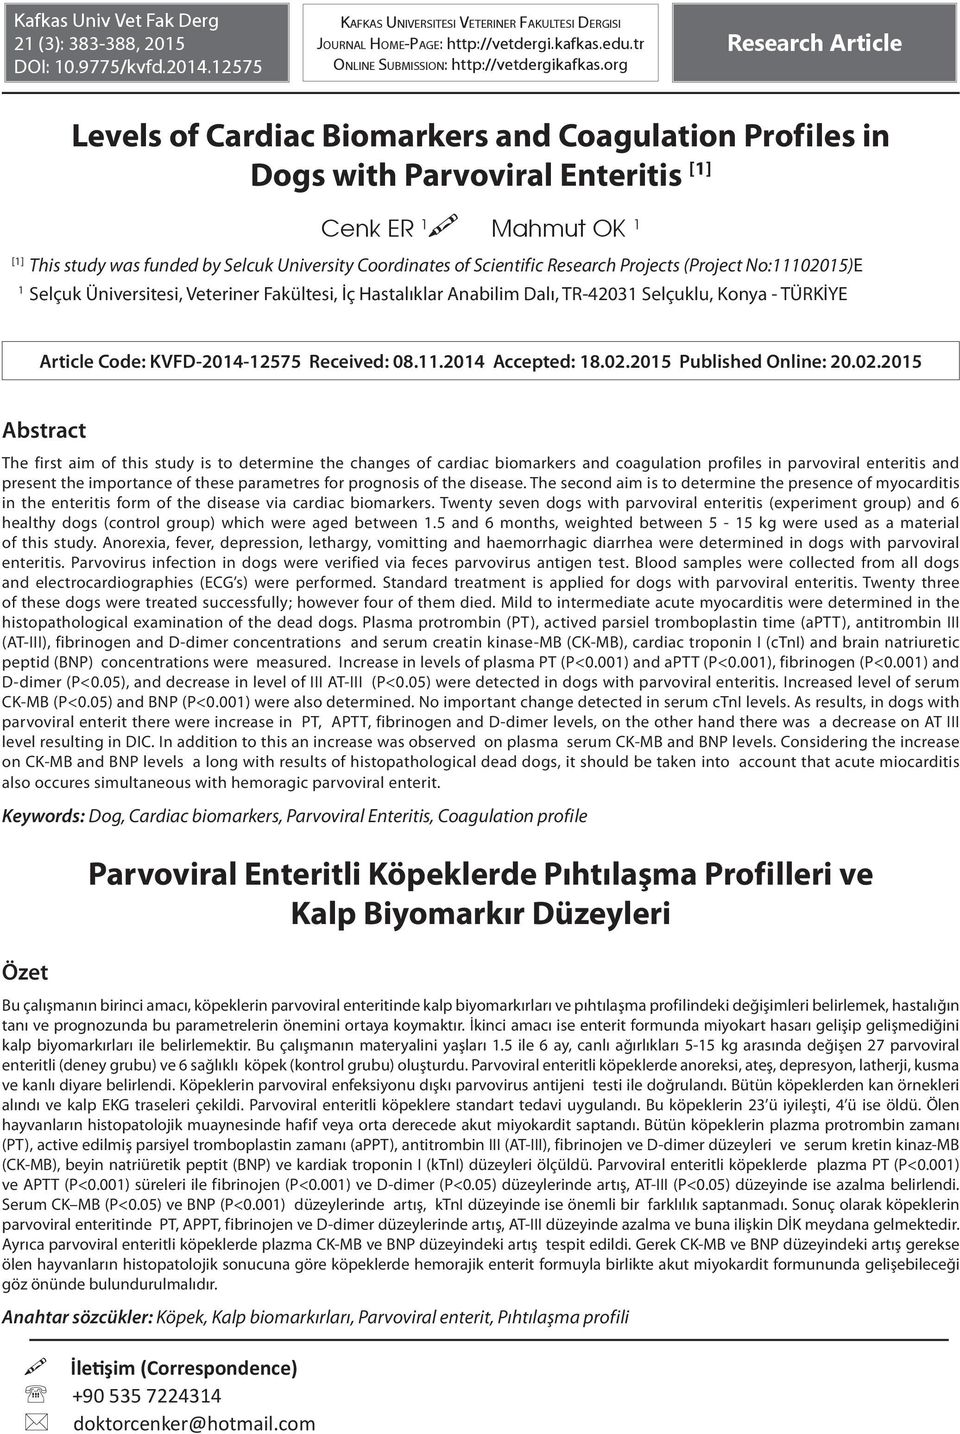 org Research Article [1] 1 Levels of Cardiac Biomarkers and Coagulation Profiles in Dogs with Parvoviral Enteritis [1] Cenk ER 1 Mahmut OK 1 This study was funded by Selcuk University Coordinates of